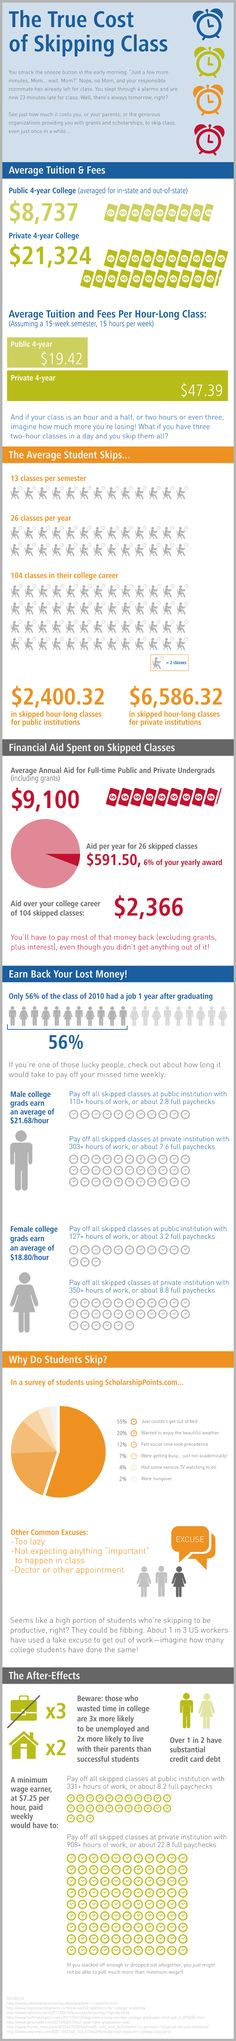 The true cost of skipping class #infographic